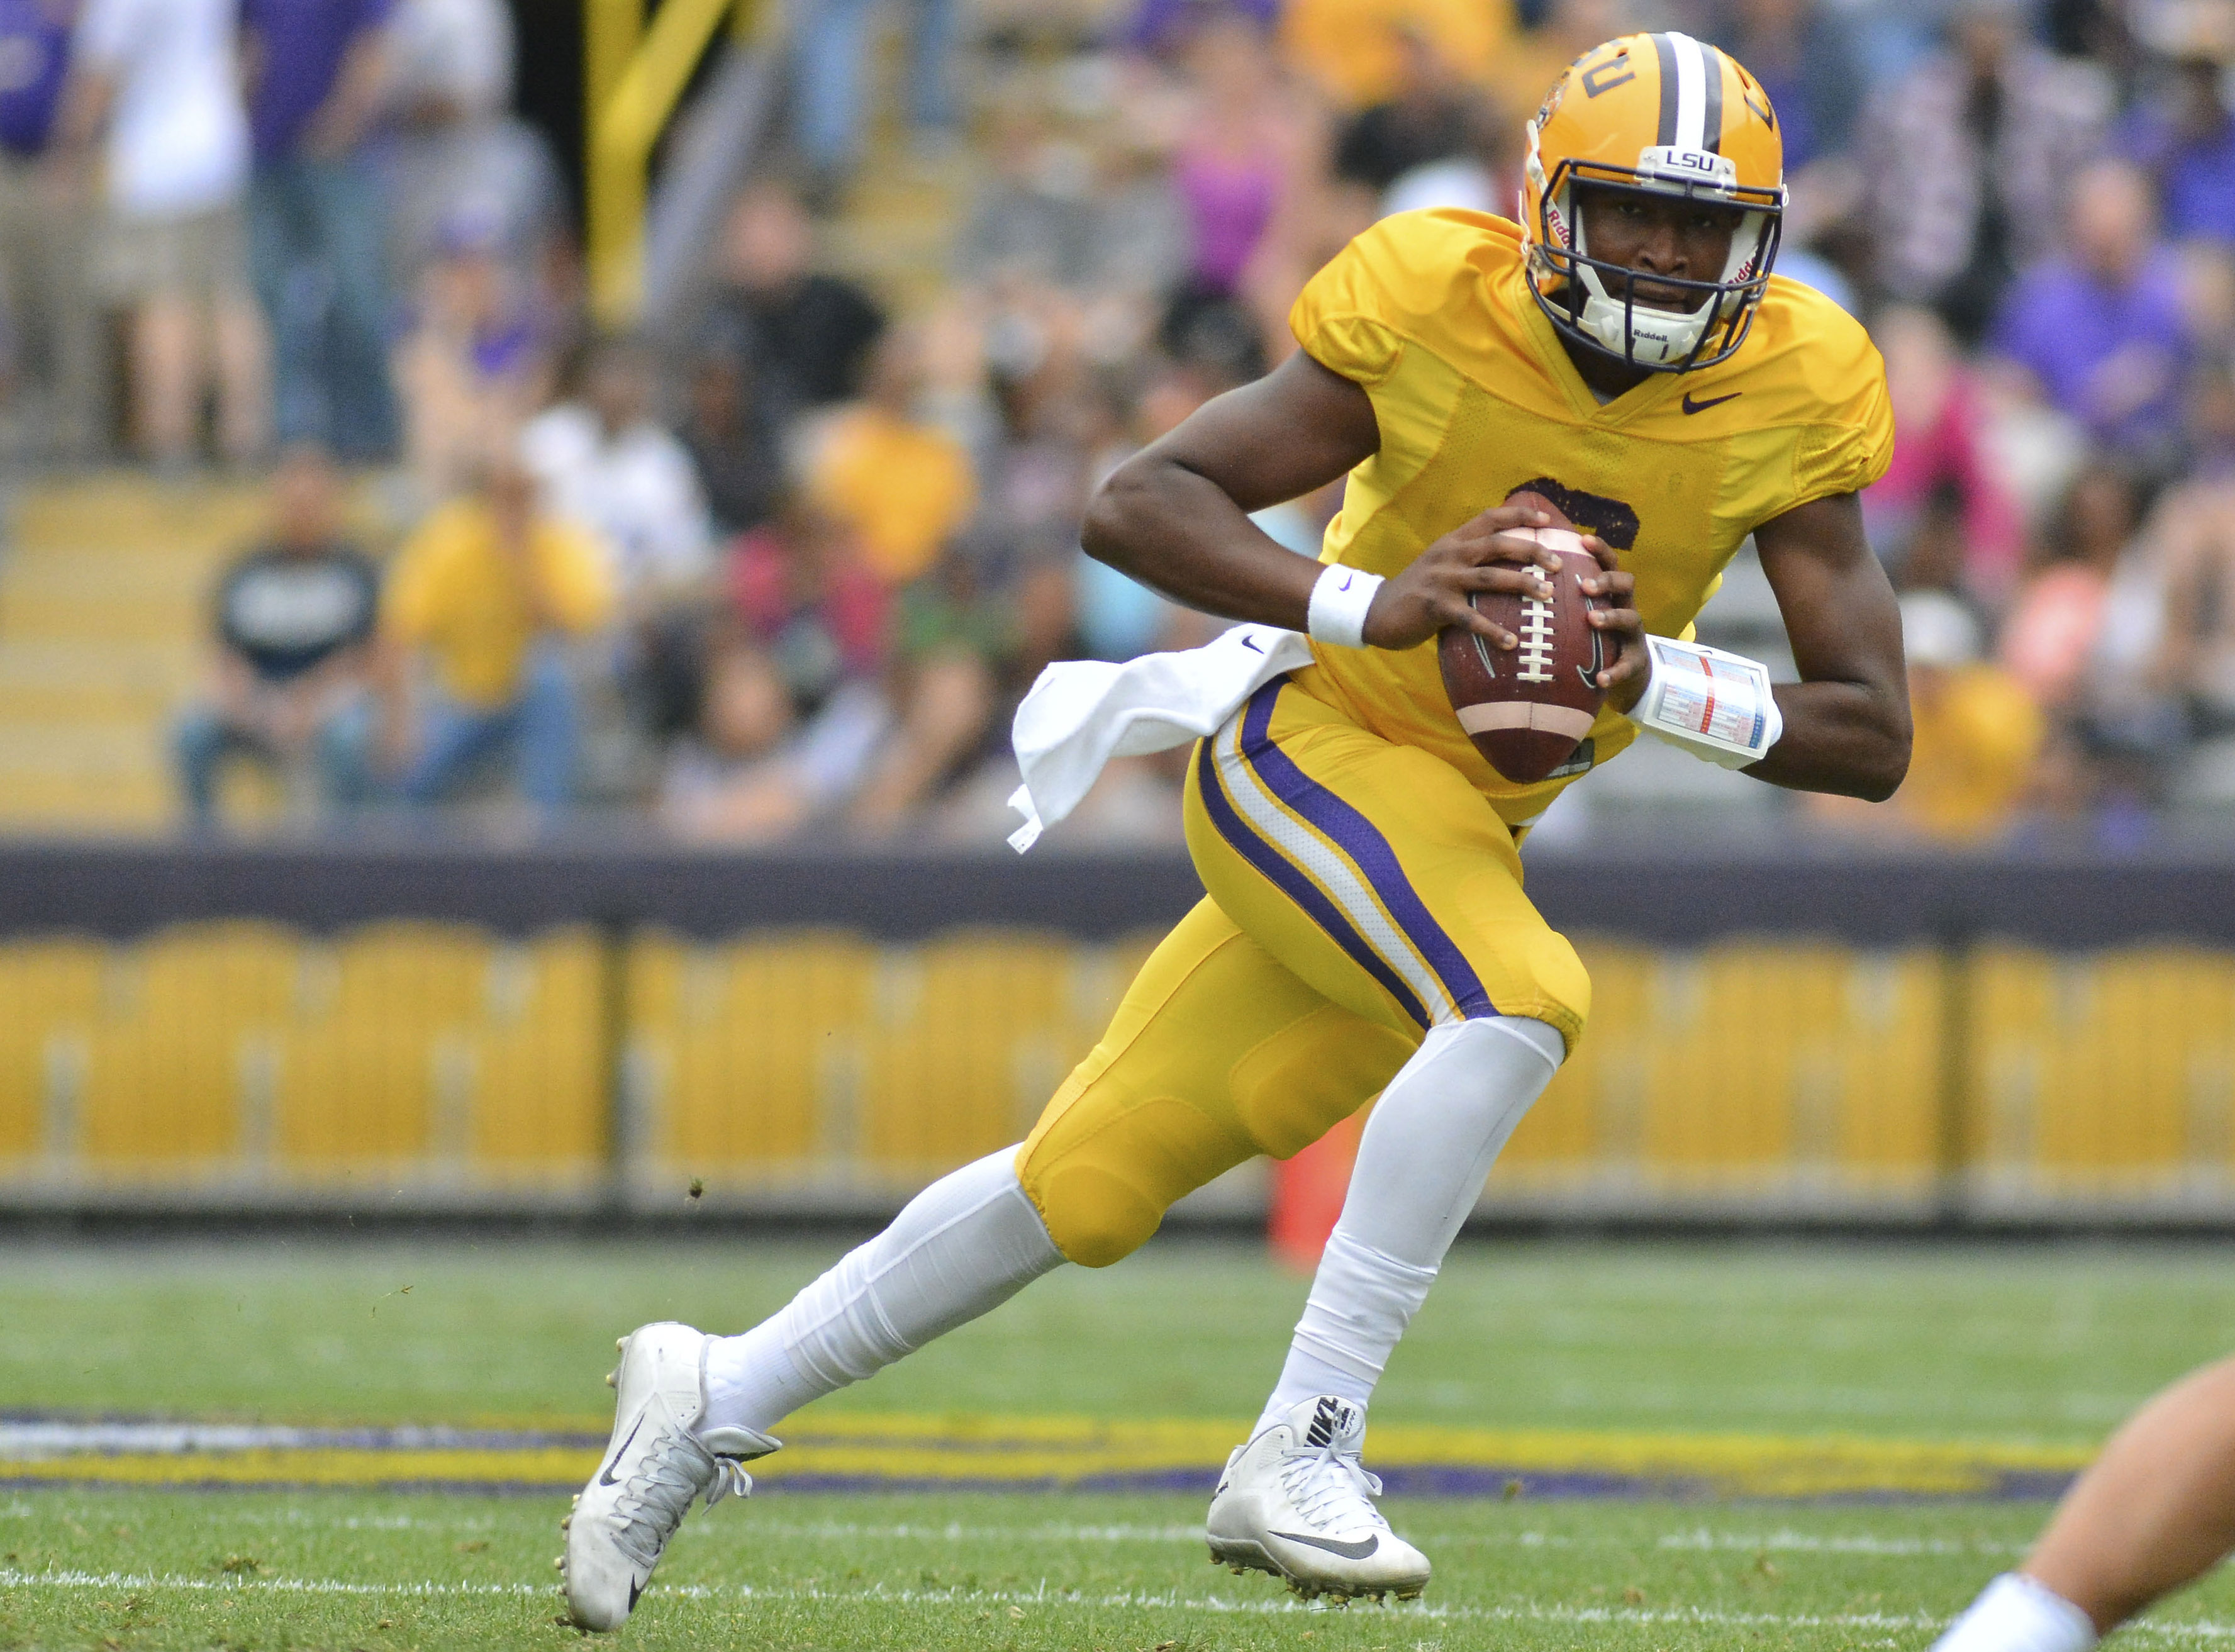 UNC Football Recruiting: Former LSU QB Brandon Harris to Visit Tar Heels